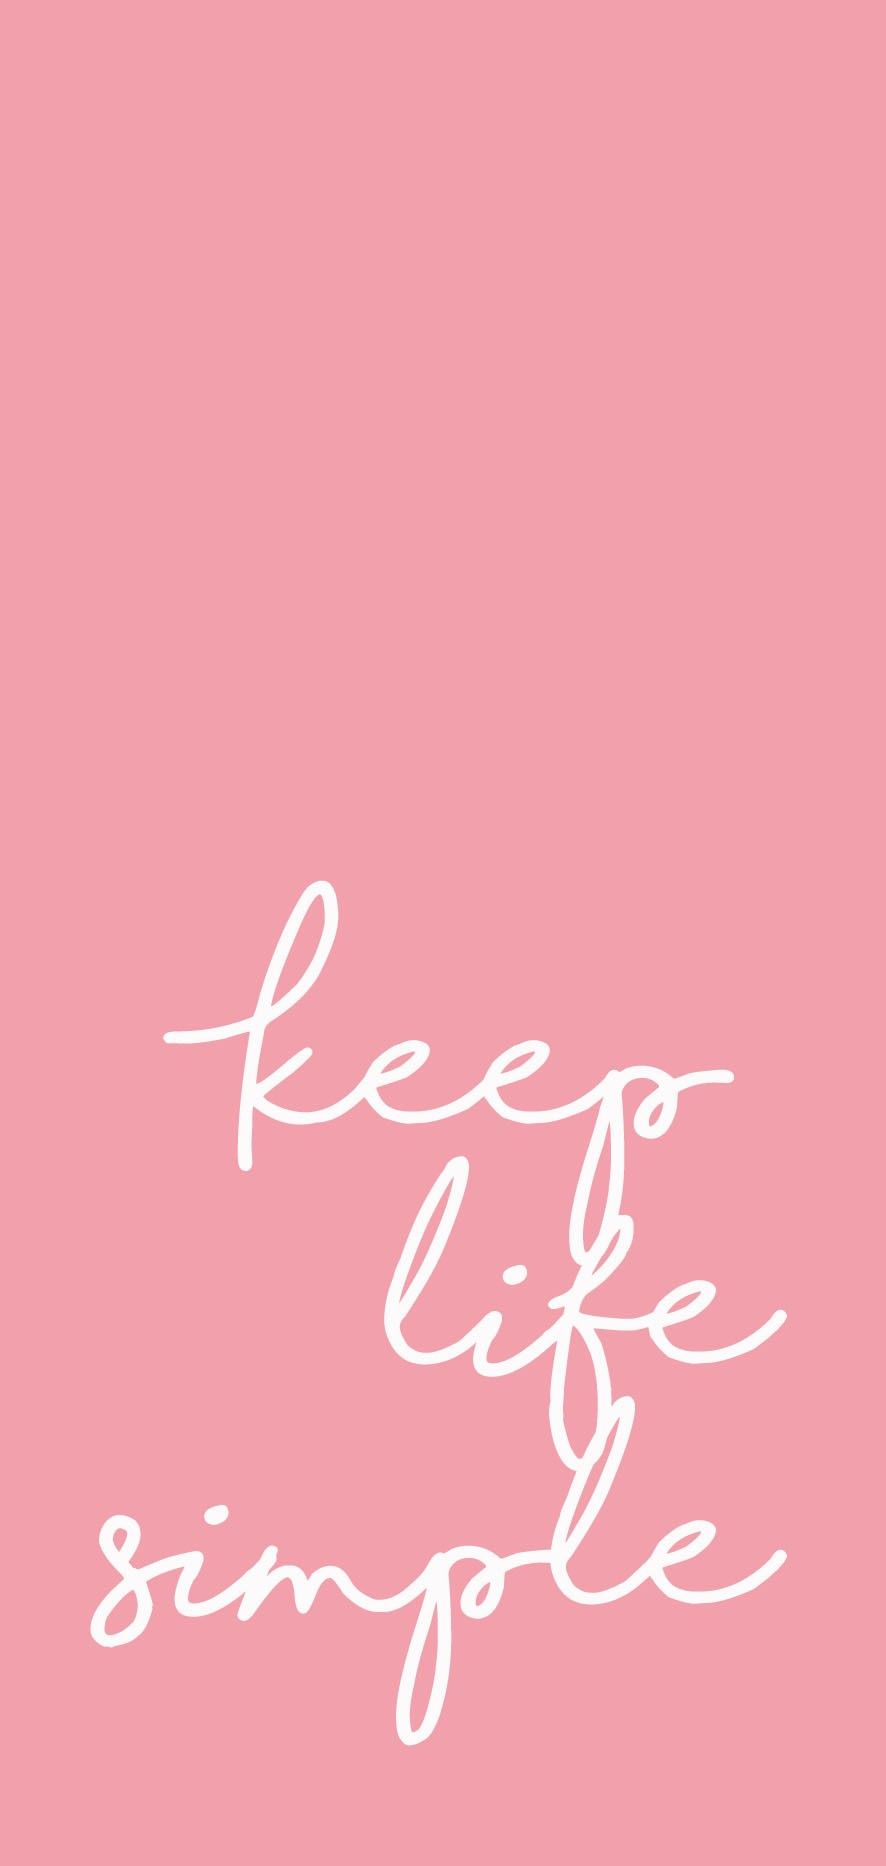 Keep Life Simple Phone Wallpaper Pink Simple Phone Wallpapers Simple Wallpapers